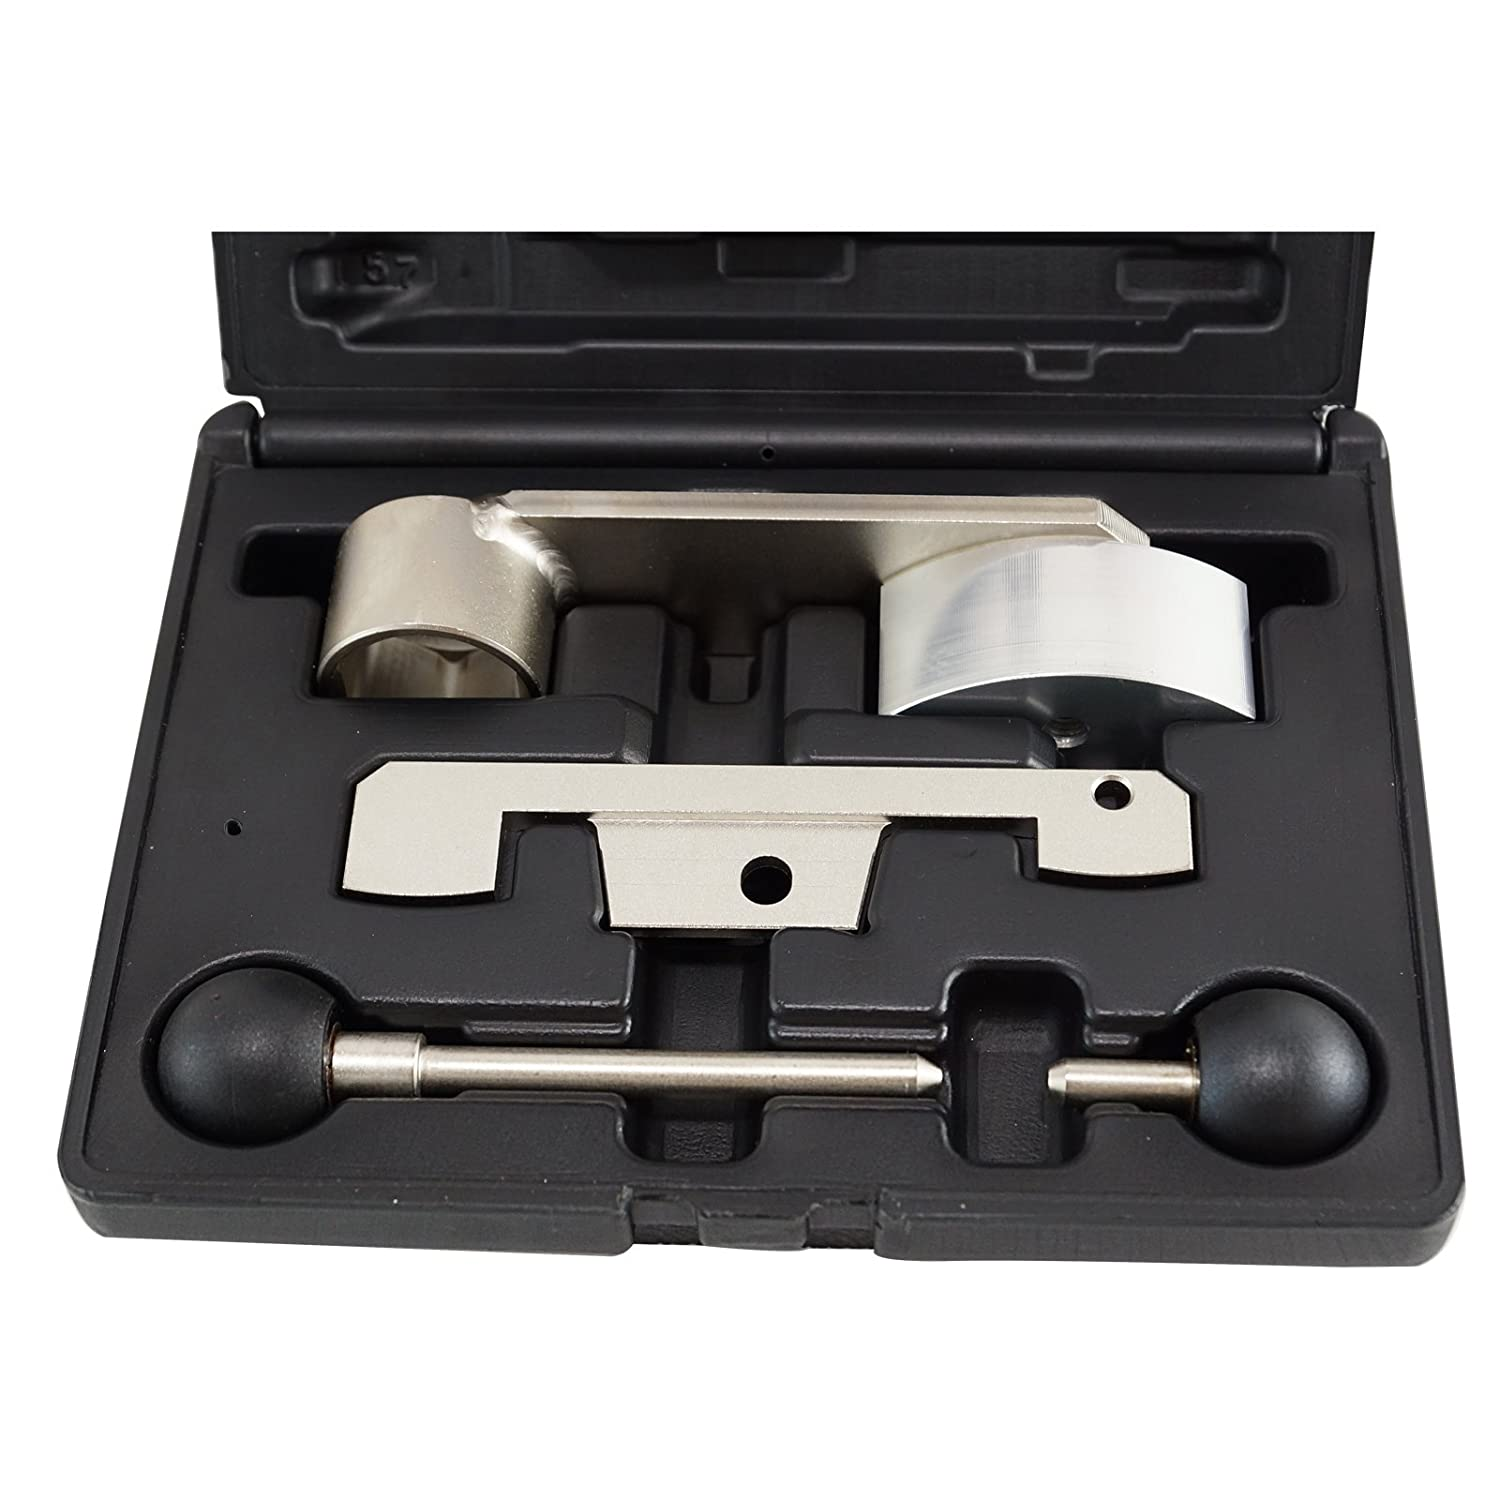 EWK Timing Tool Kit for Porsche 997 Camshaft Alignment Gauge EB0120